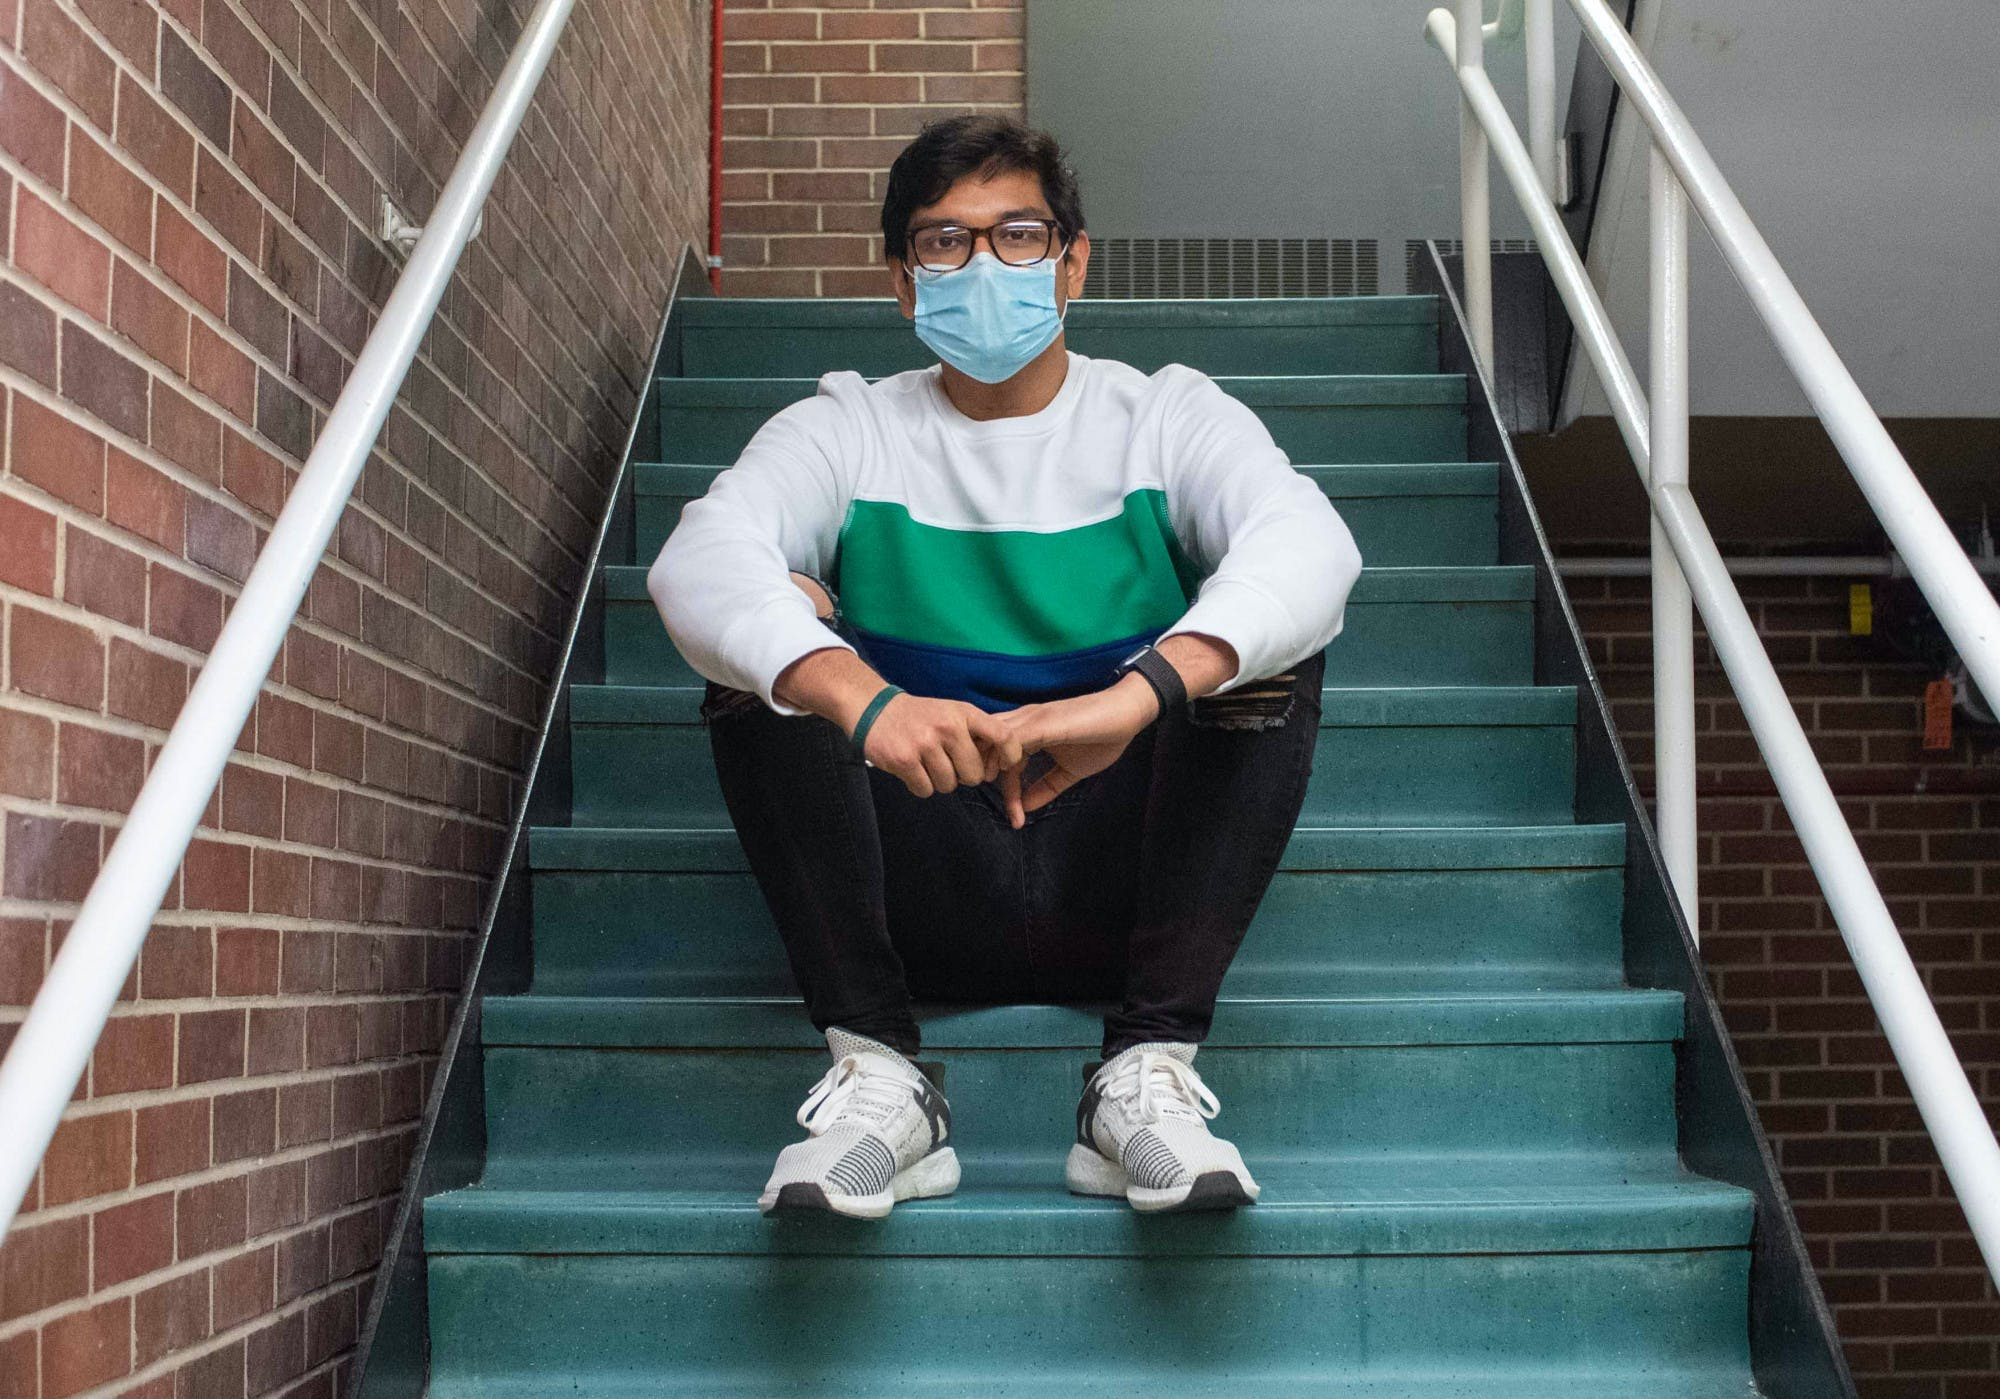 A person wearing a face mask, sweatshirt, jeans, sneakers and glasses sits on the stairs of a building stairwell, posing for a photo.